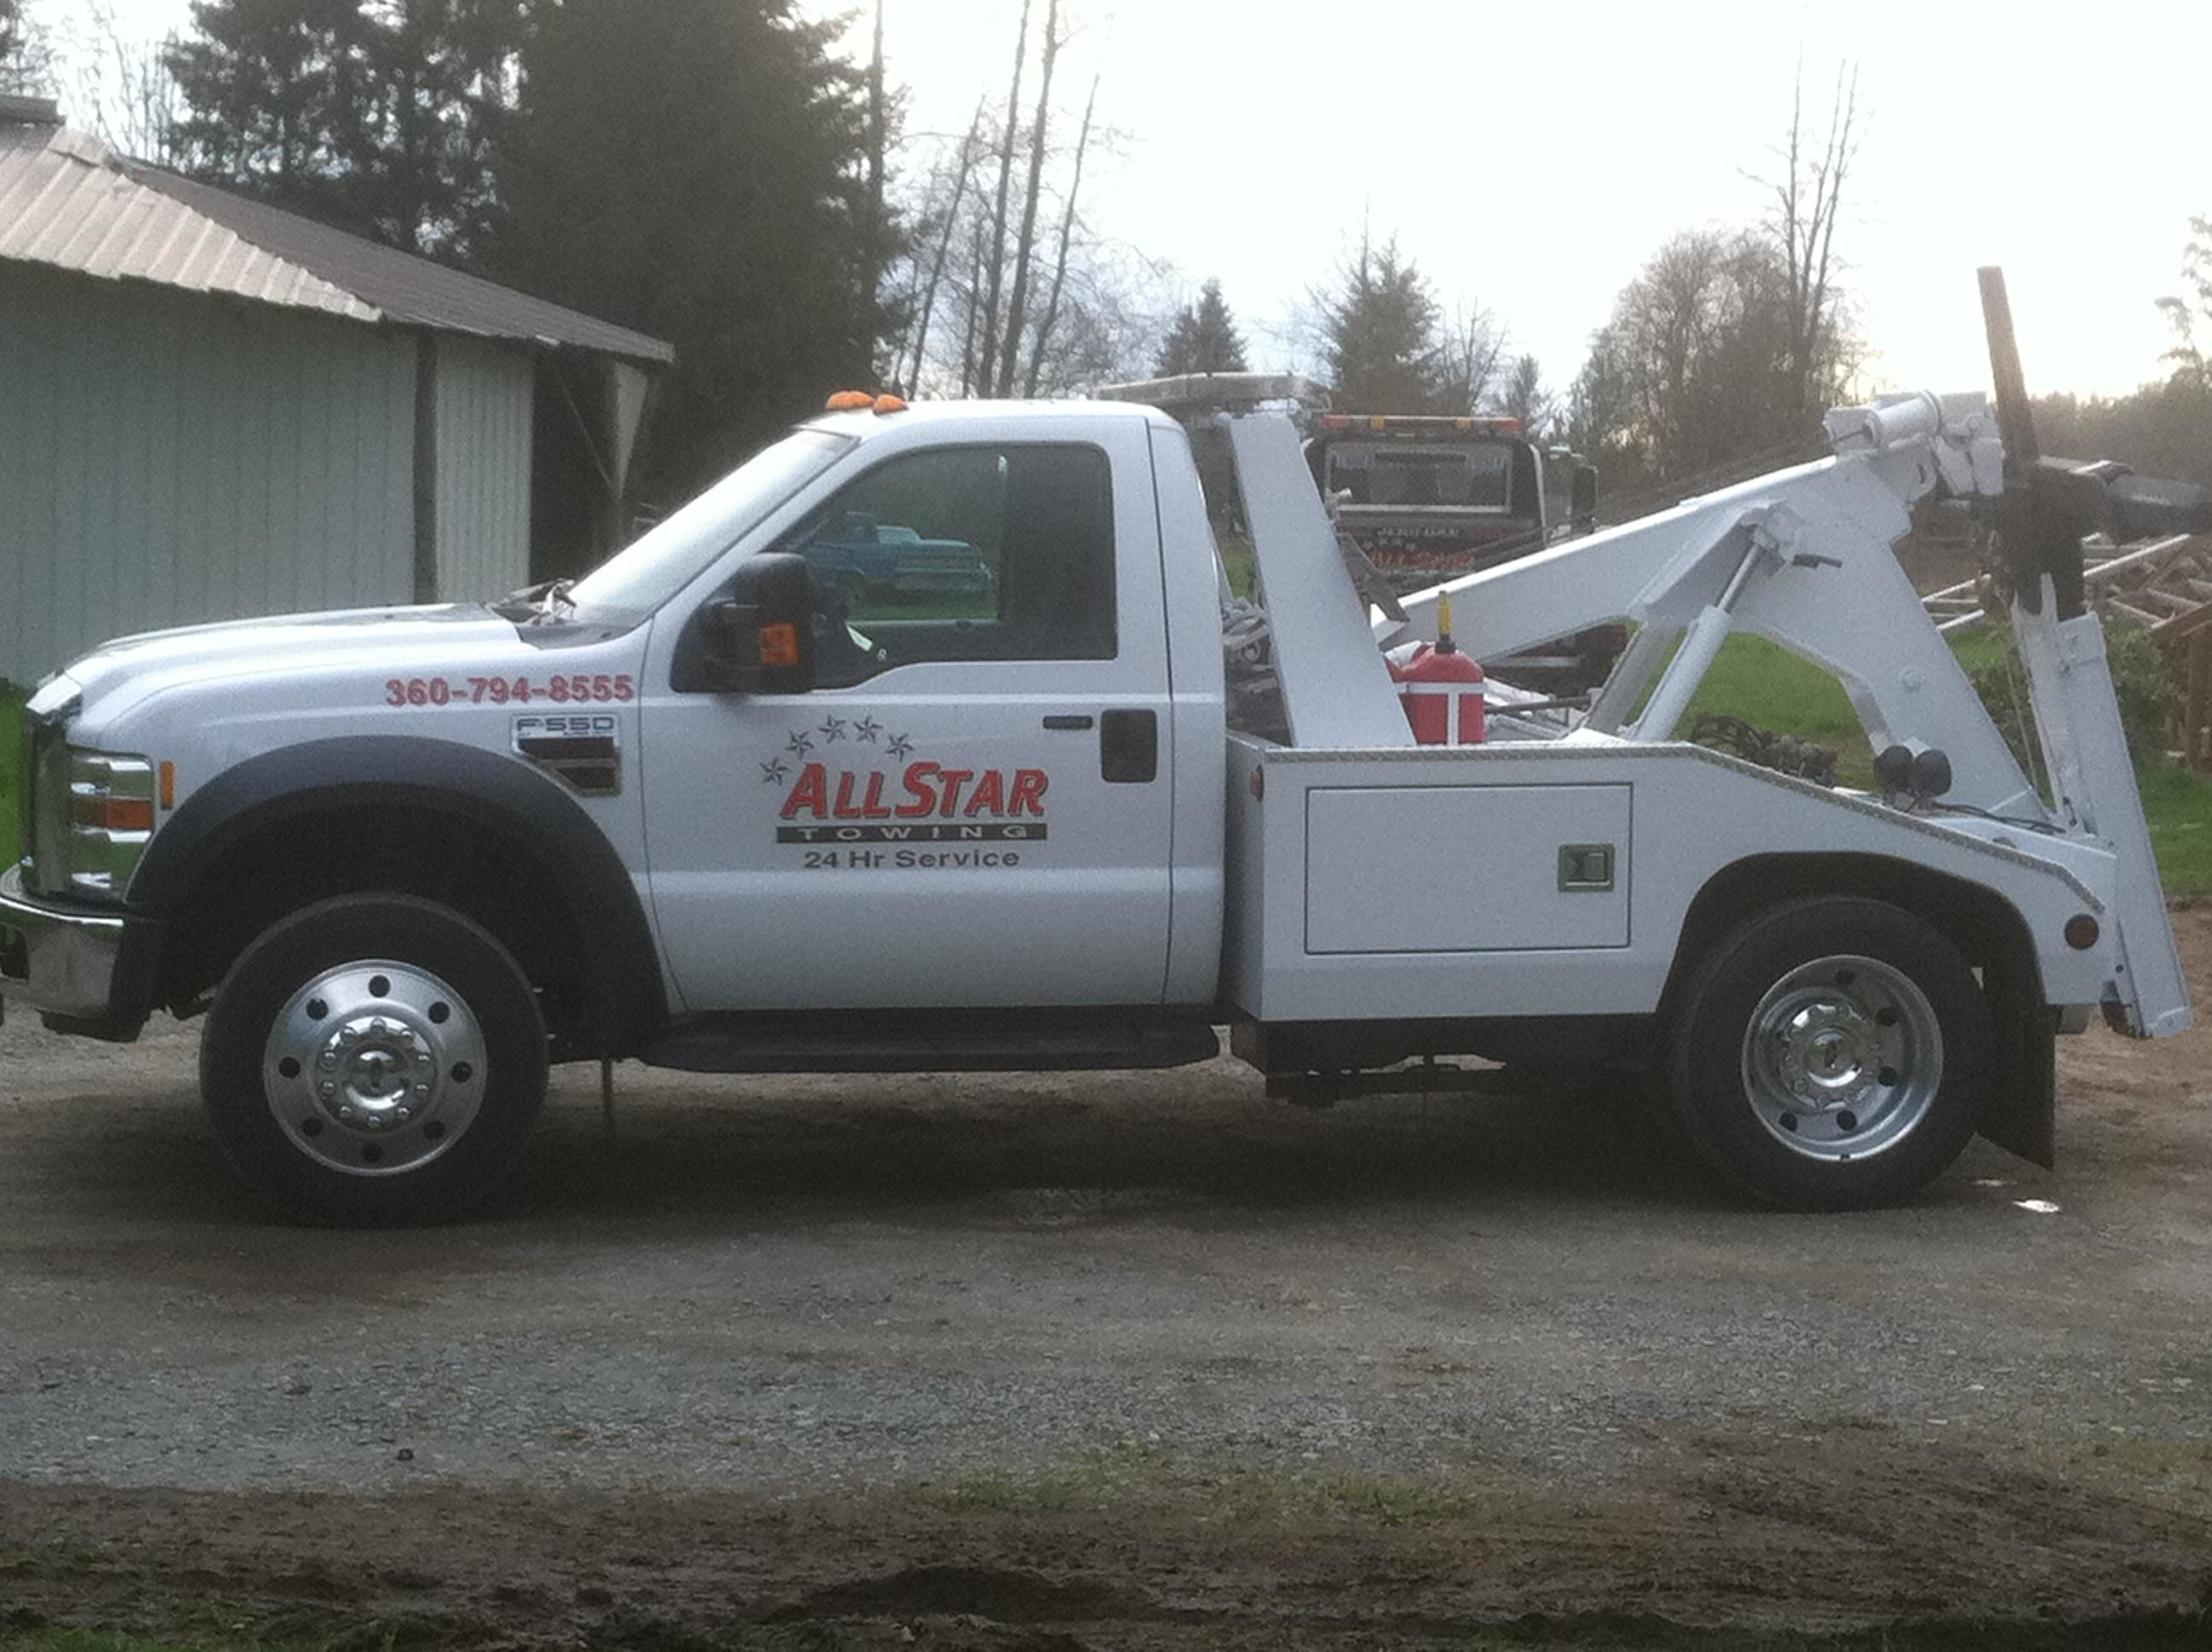 All Star Towing